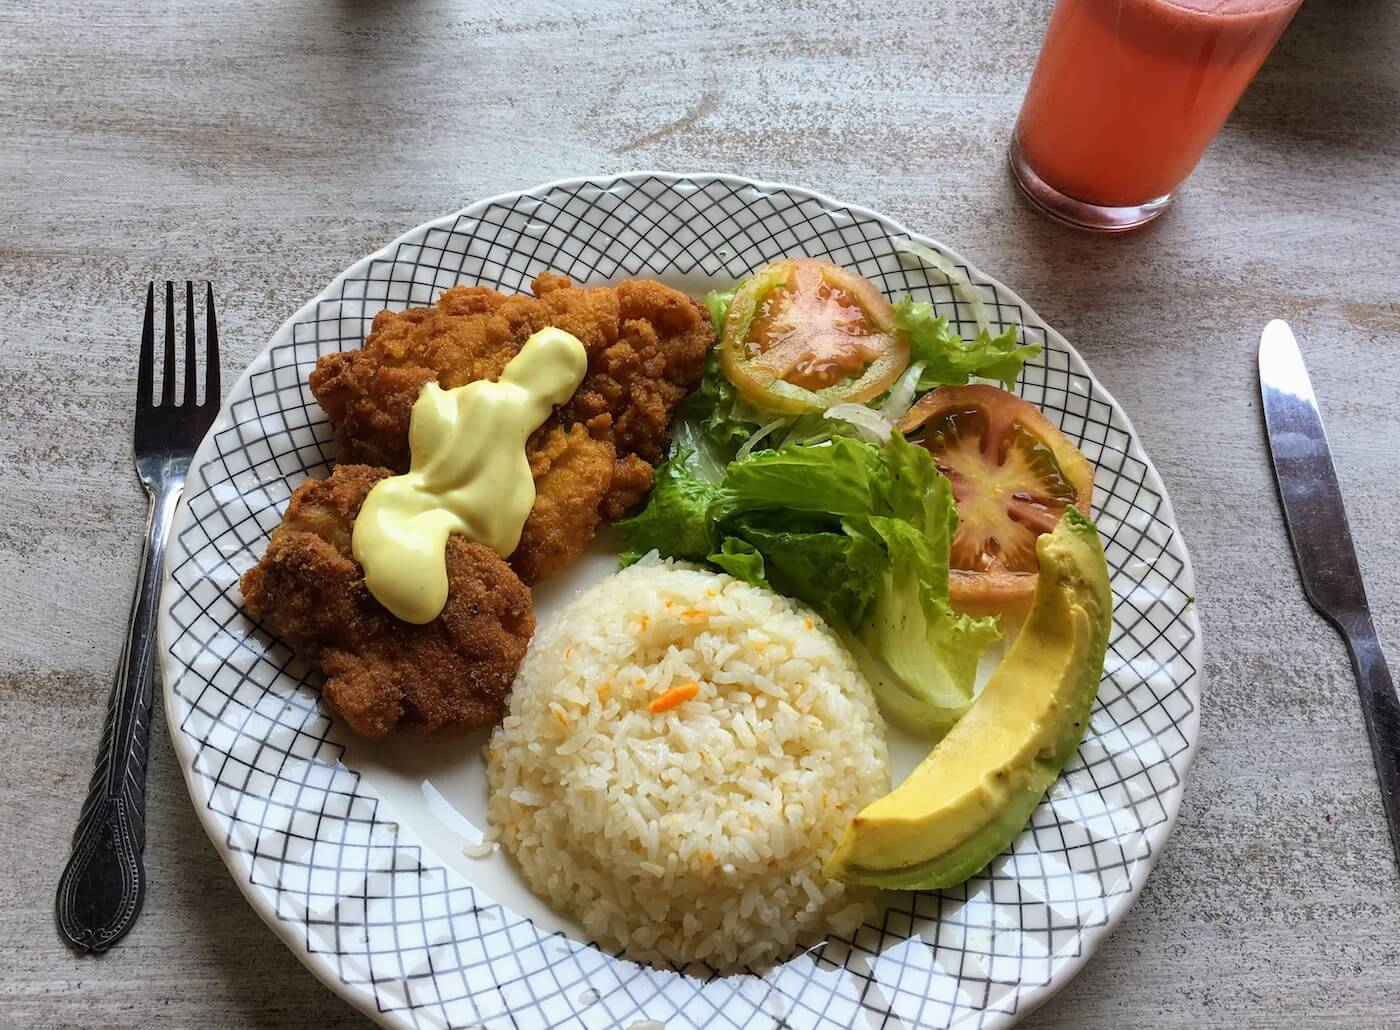 Flor fried fish, rice, avocado, and salad